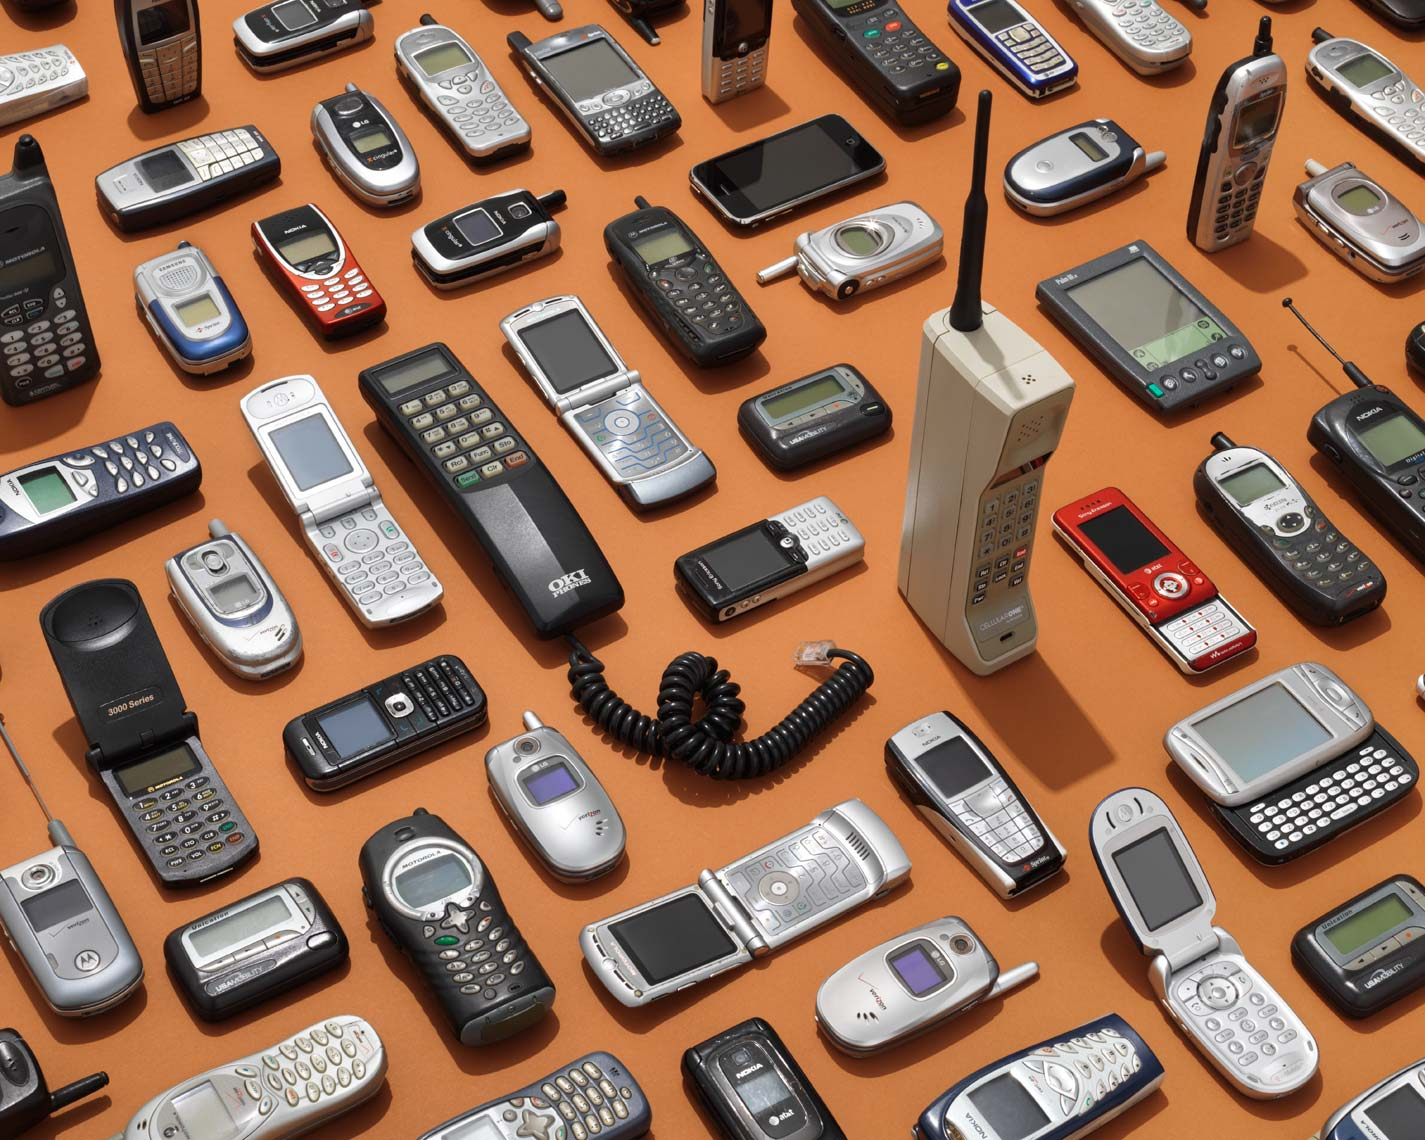 vintage cell phones organized neatly